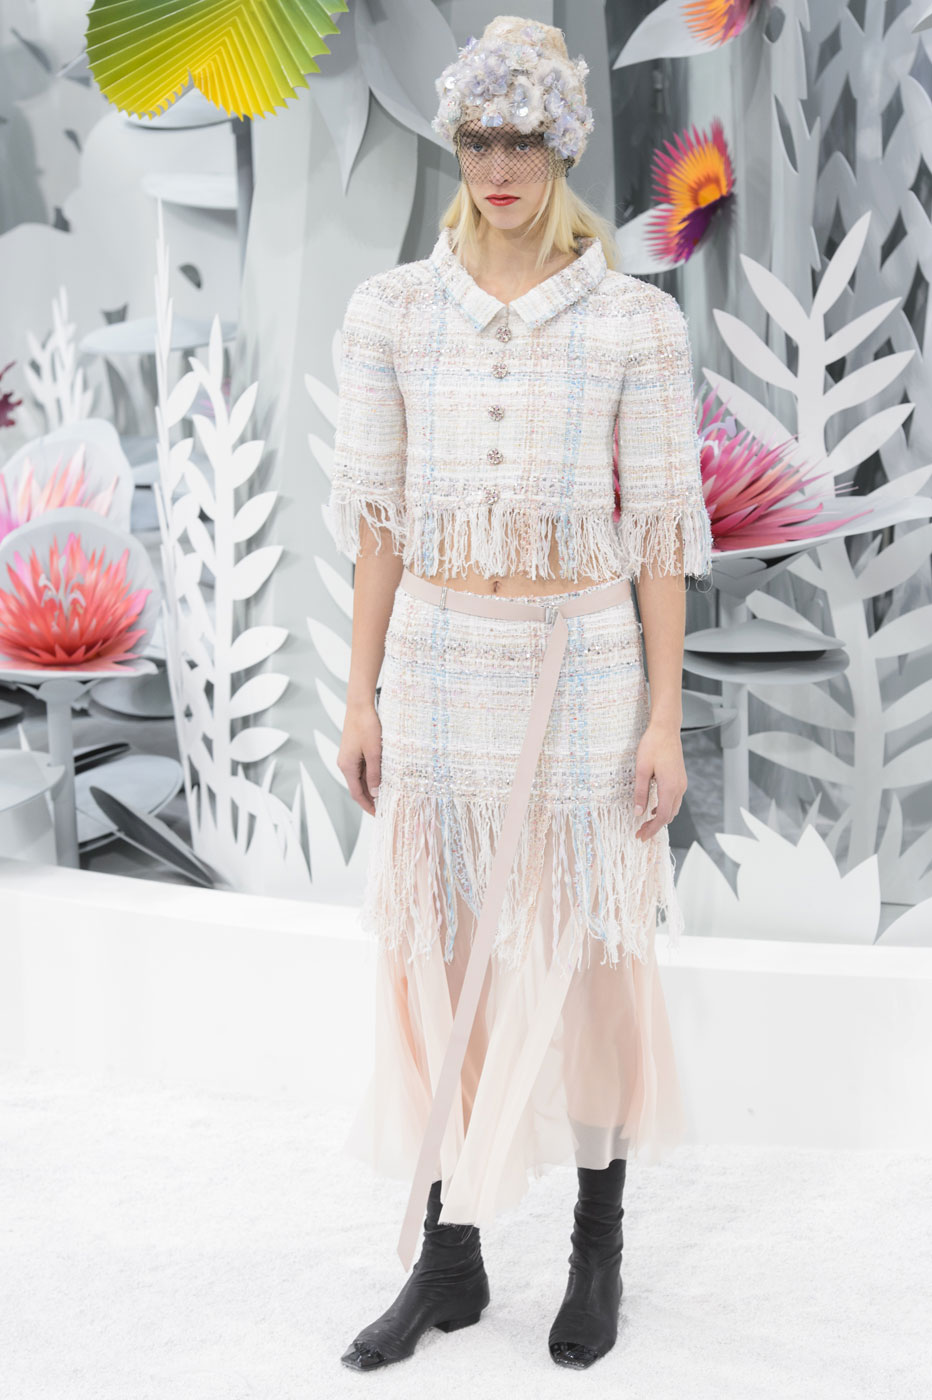 Chanel-fashion-runway-show-haute-couture-paris-spring-summer-2015-the-impression-058